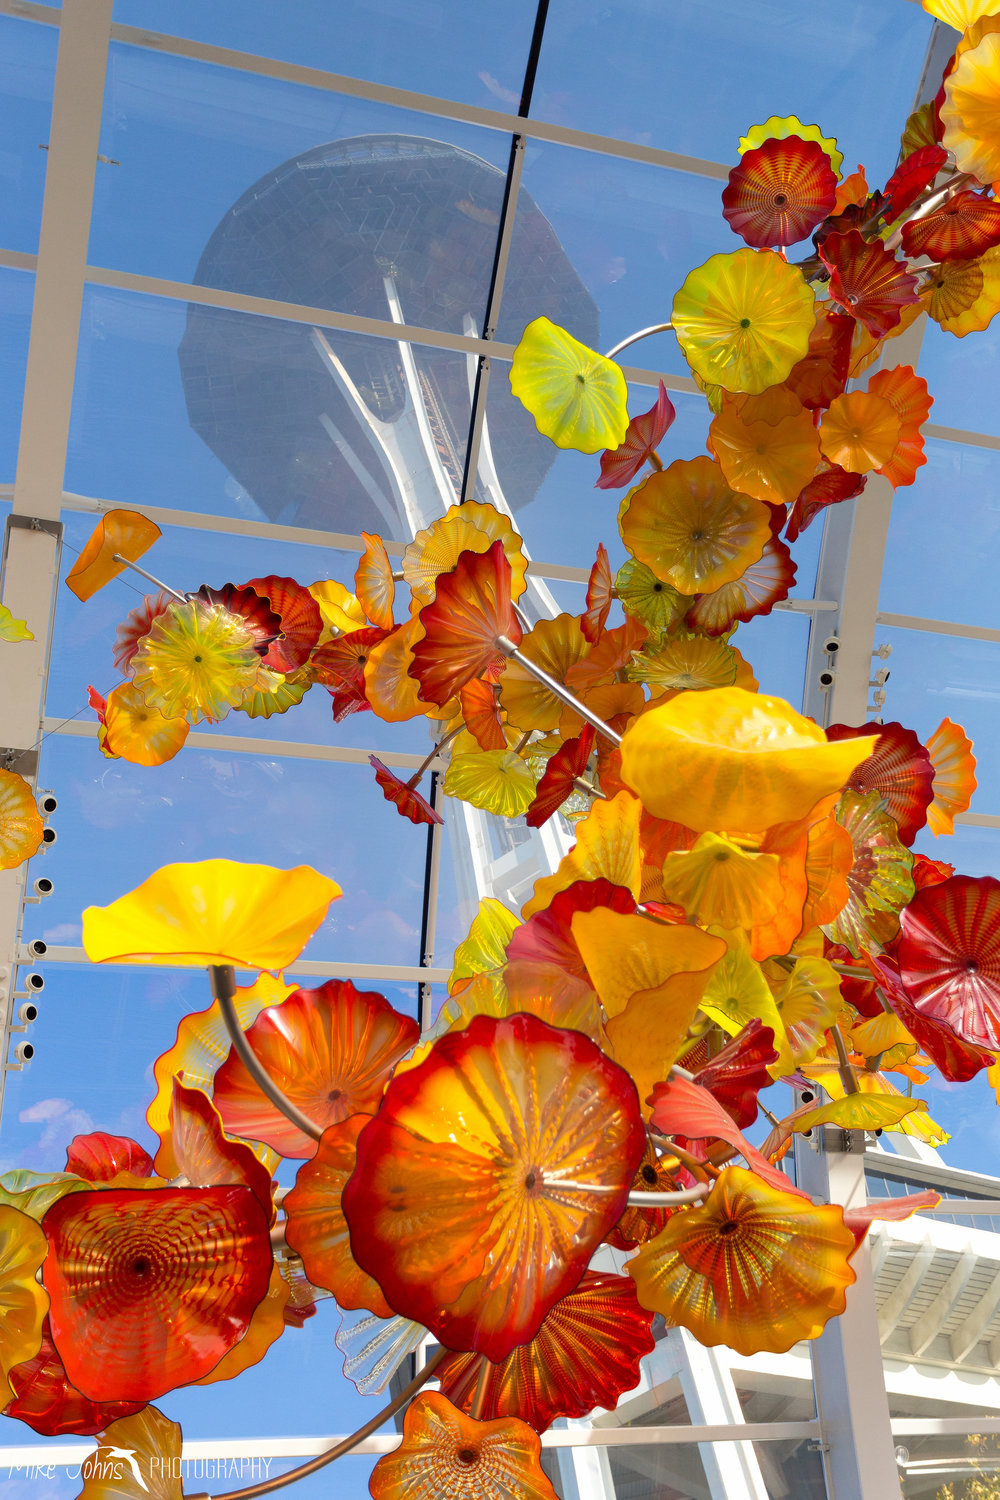 No trip to Seattle would be complete without paying a visit to the Chihuly museum.